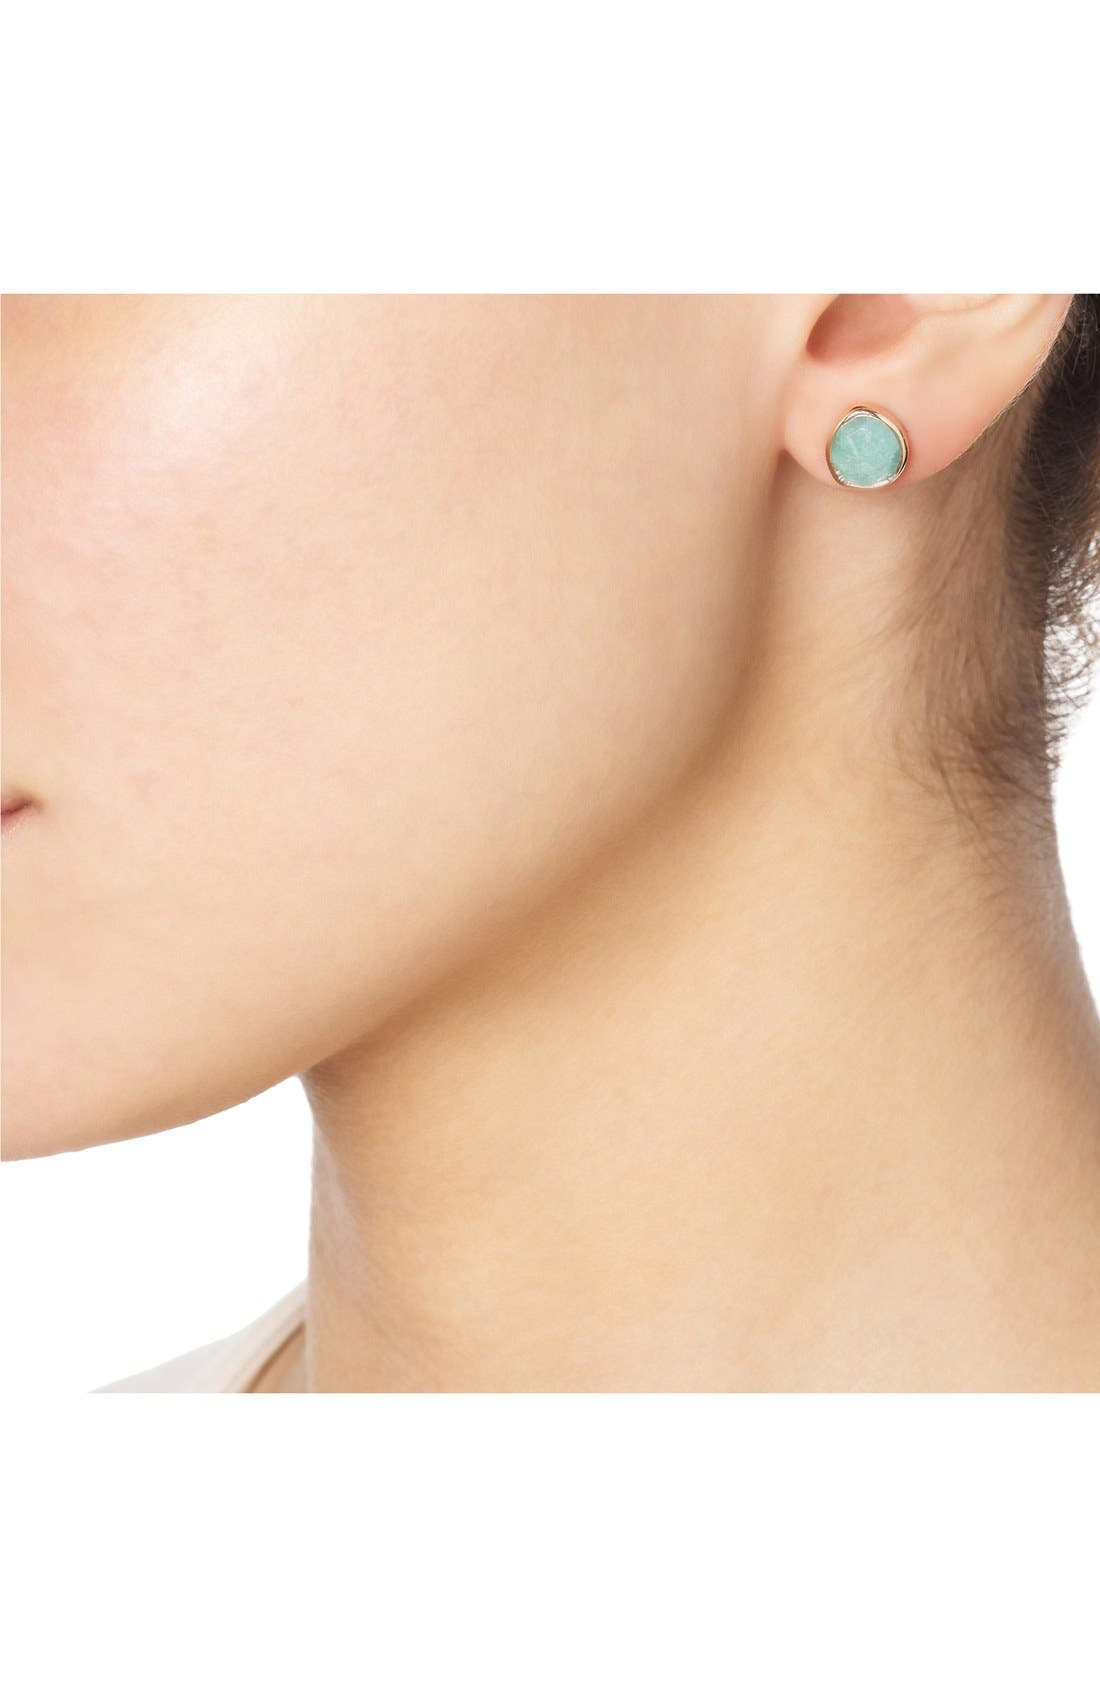 MONICA VINADER, 'Siren' Semiprecious Stone Stud Earrings, Alternate thumbnail 3, color, AMAZONITE/ ROSE GOLD